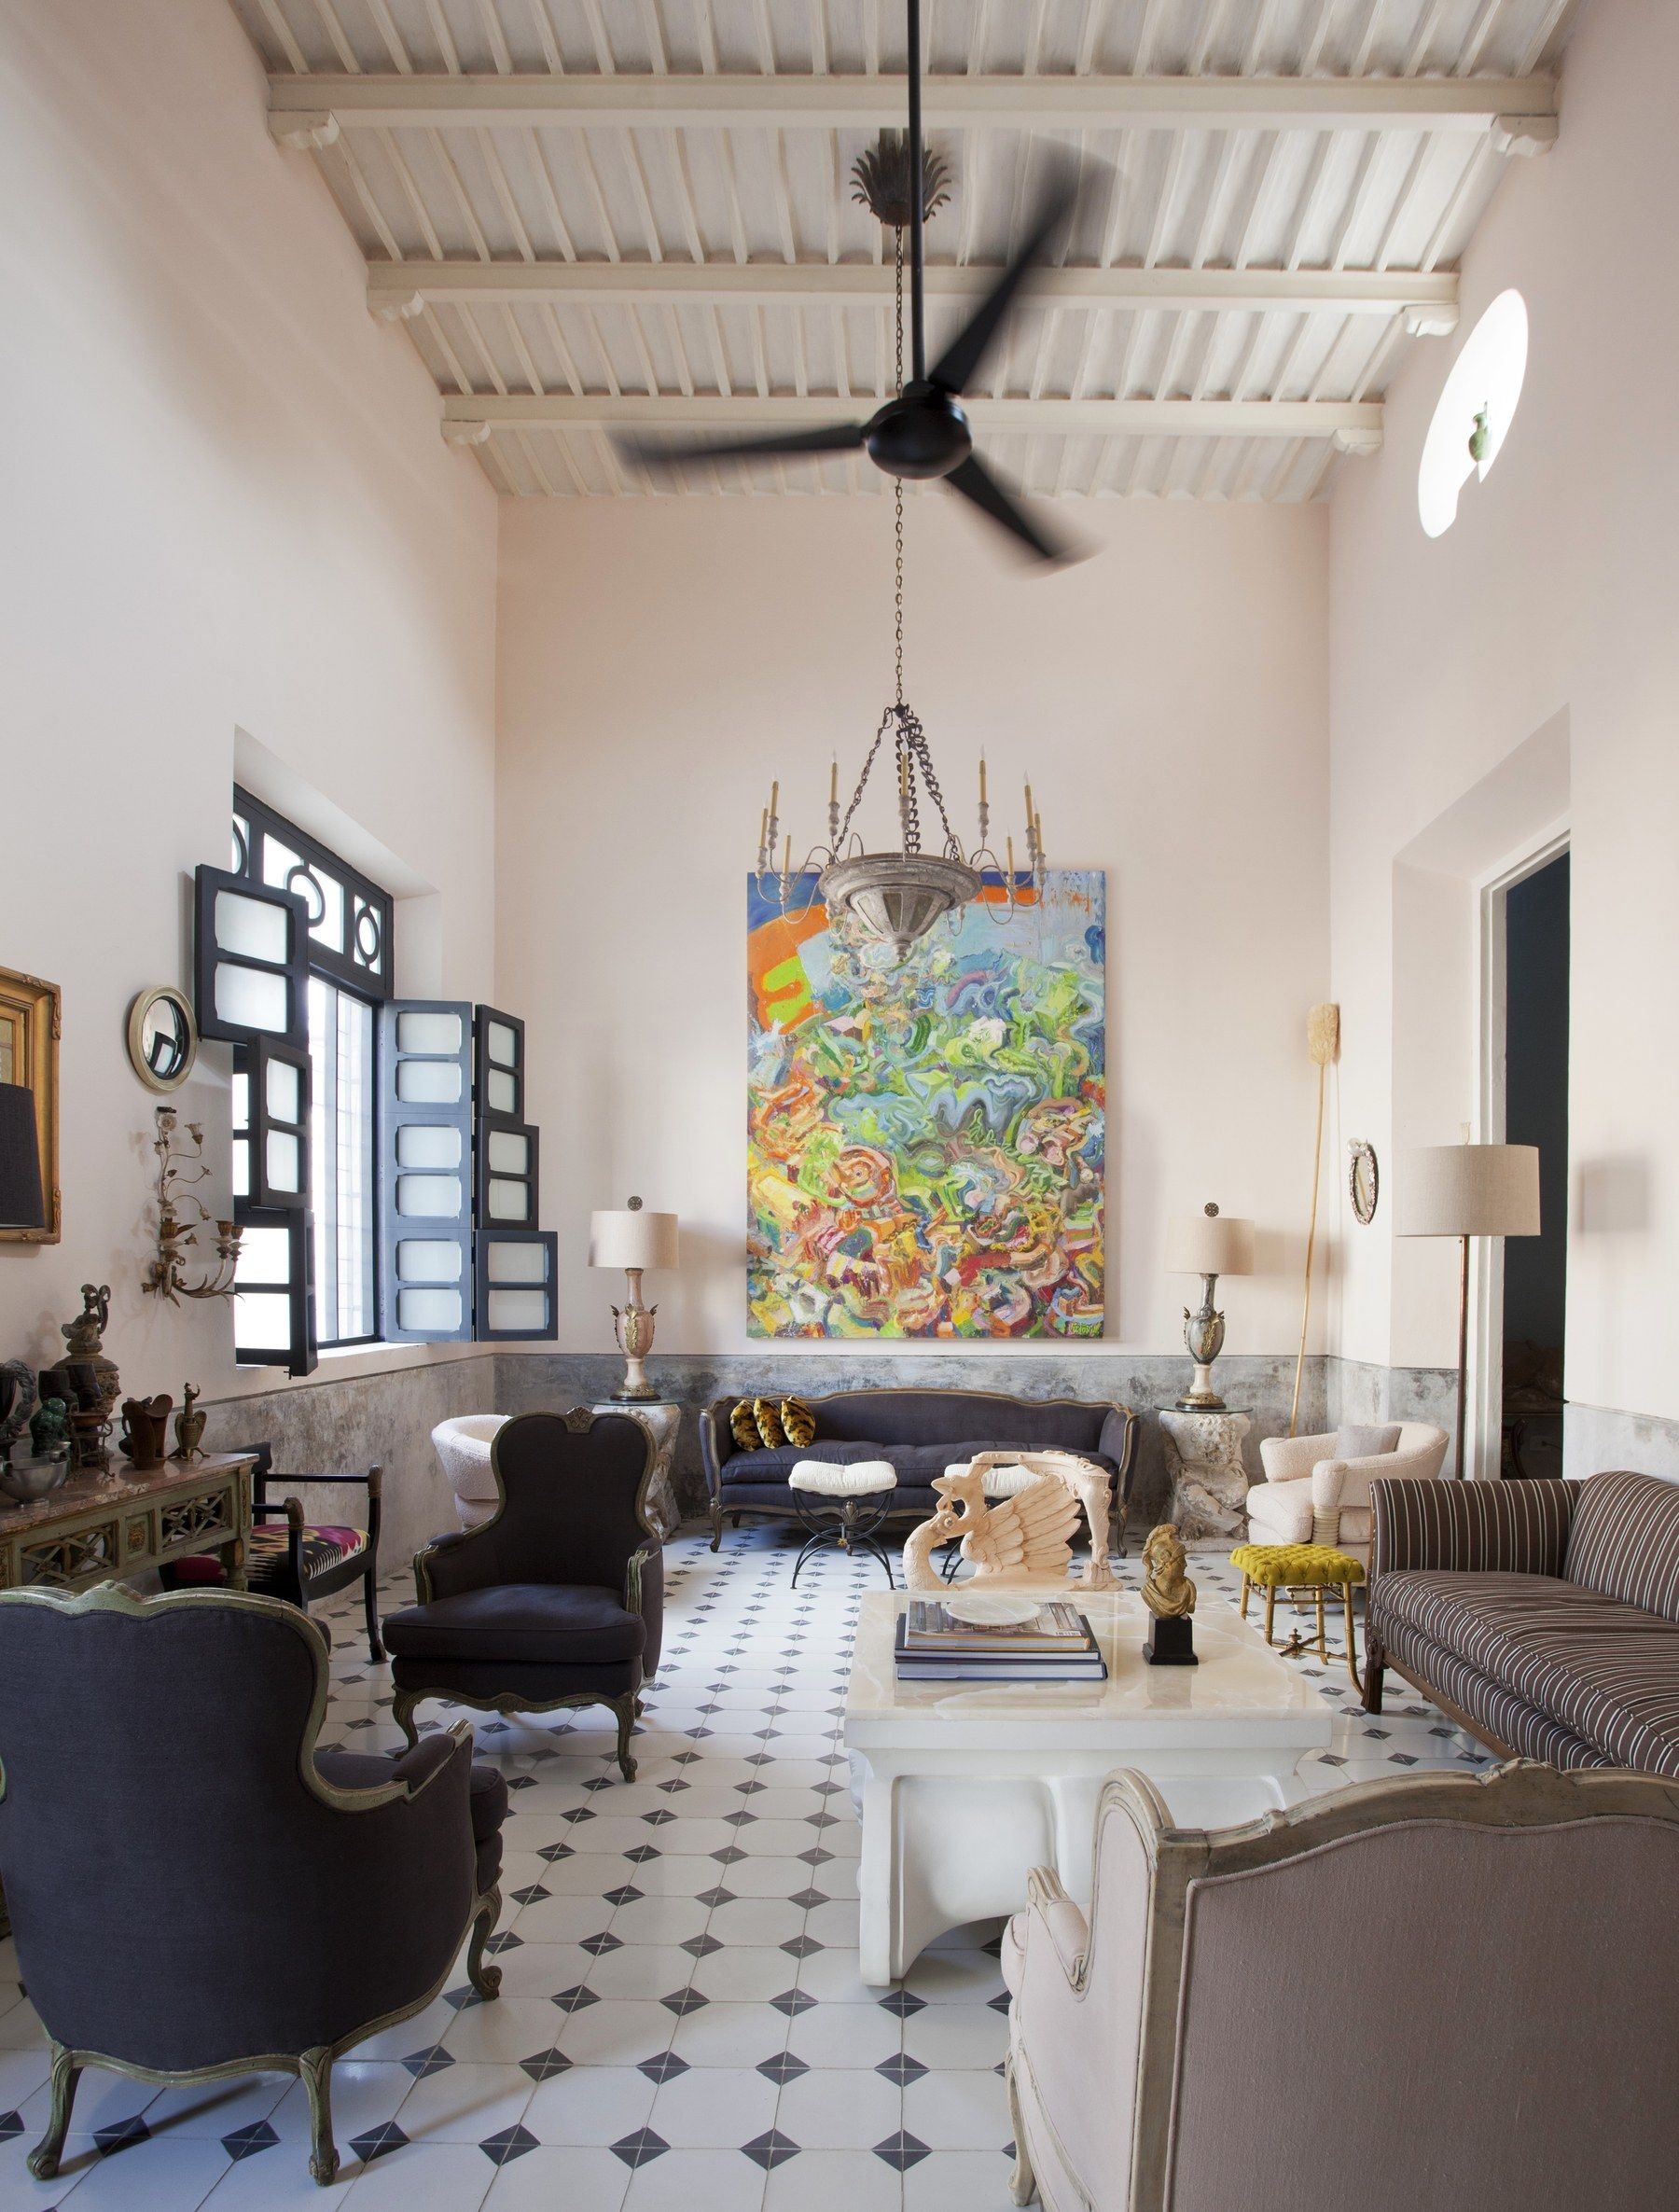 Merveilleux In The Soaring Living Room Of Casa Serrano Willson, Which Belongs To The  Co Owners Of The Los Angeles Furniture Gallery Downtown, A Painting By  Mérida ...